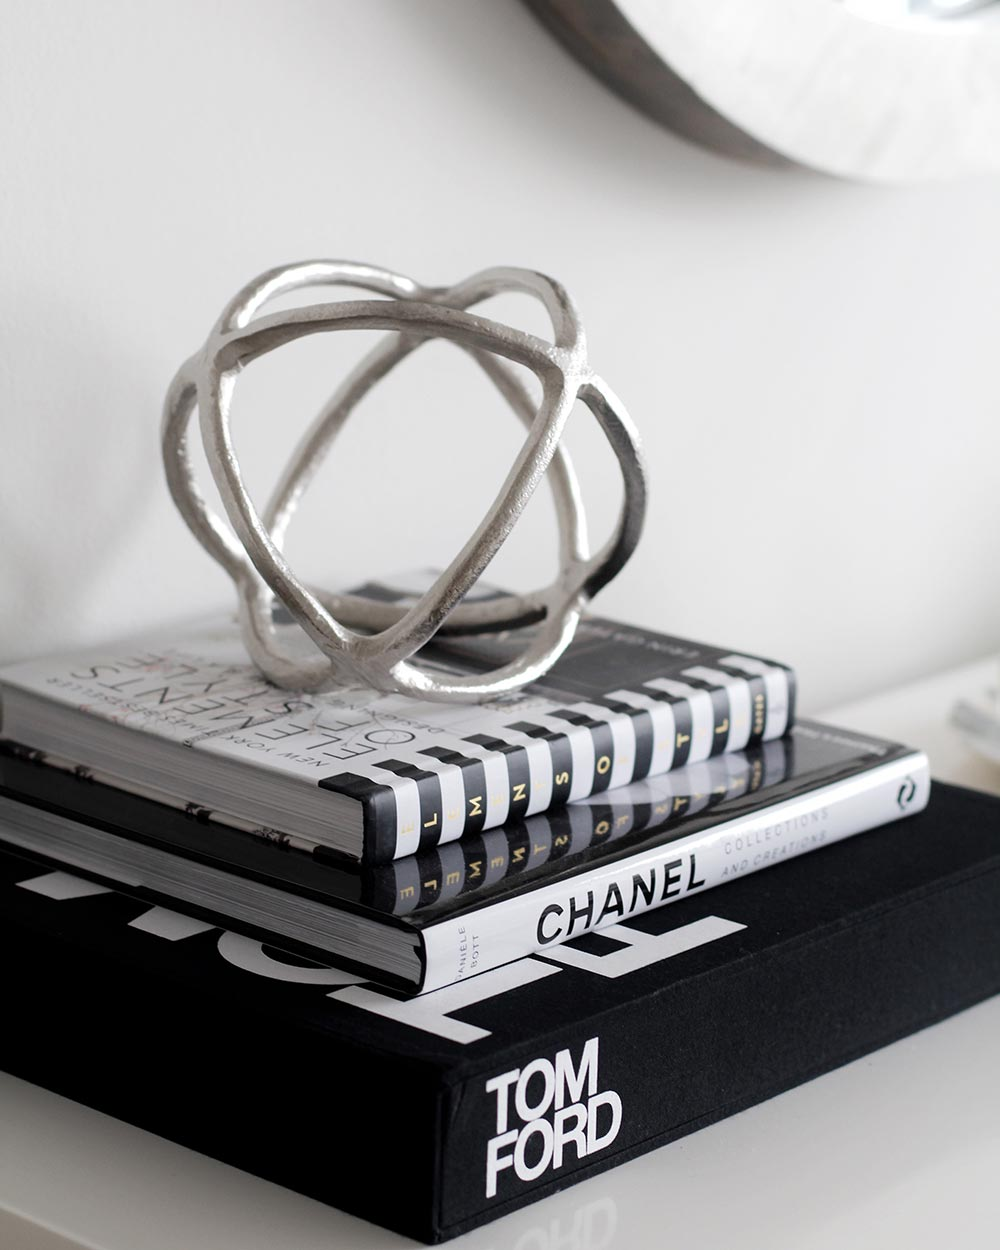 Fashion Books 2017: Fashion & Photography Books To Spruce Up Your Home